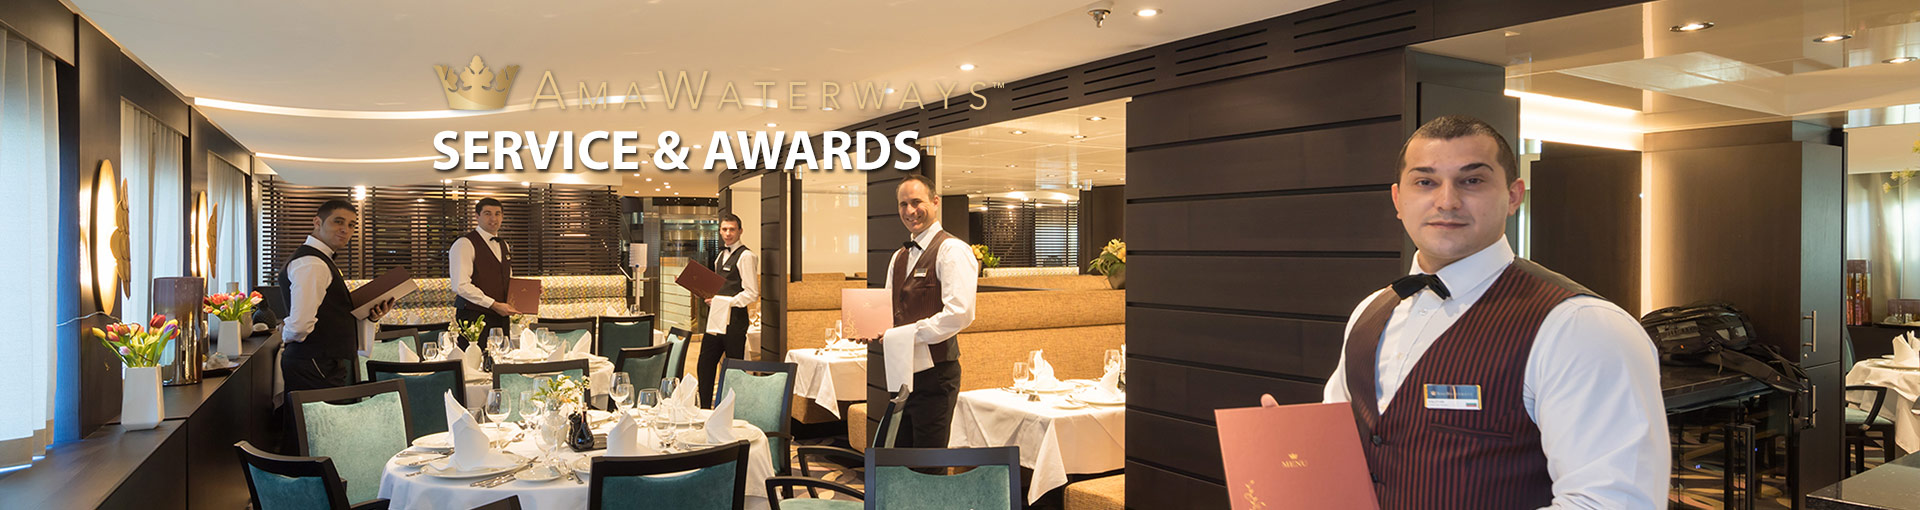 AmaWaterways Service and Awards